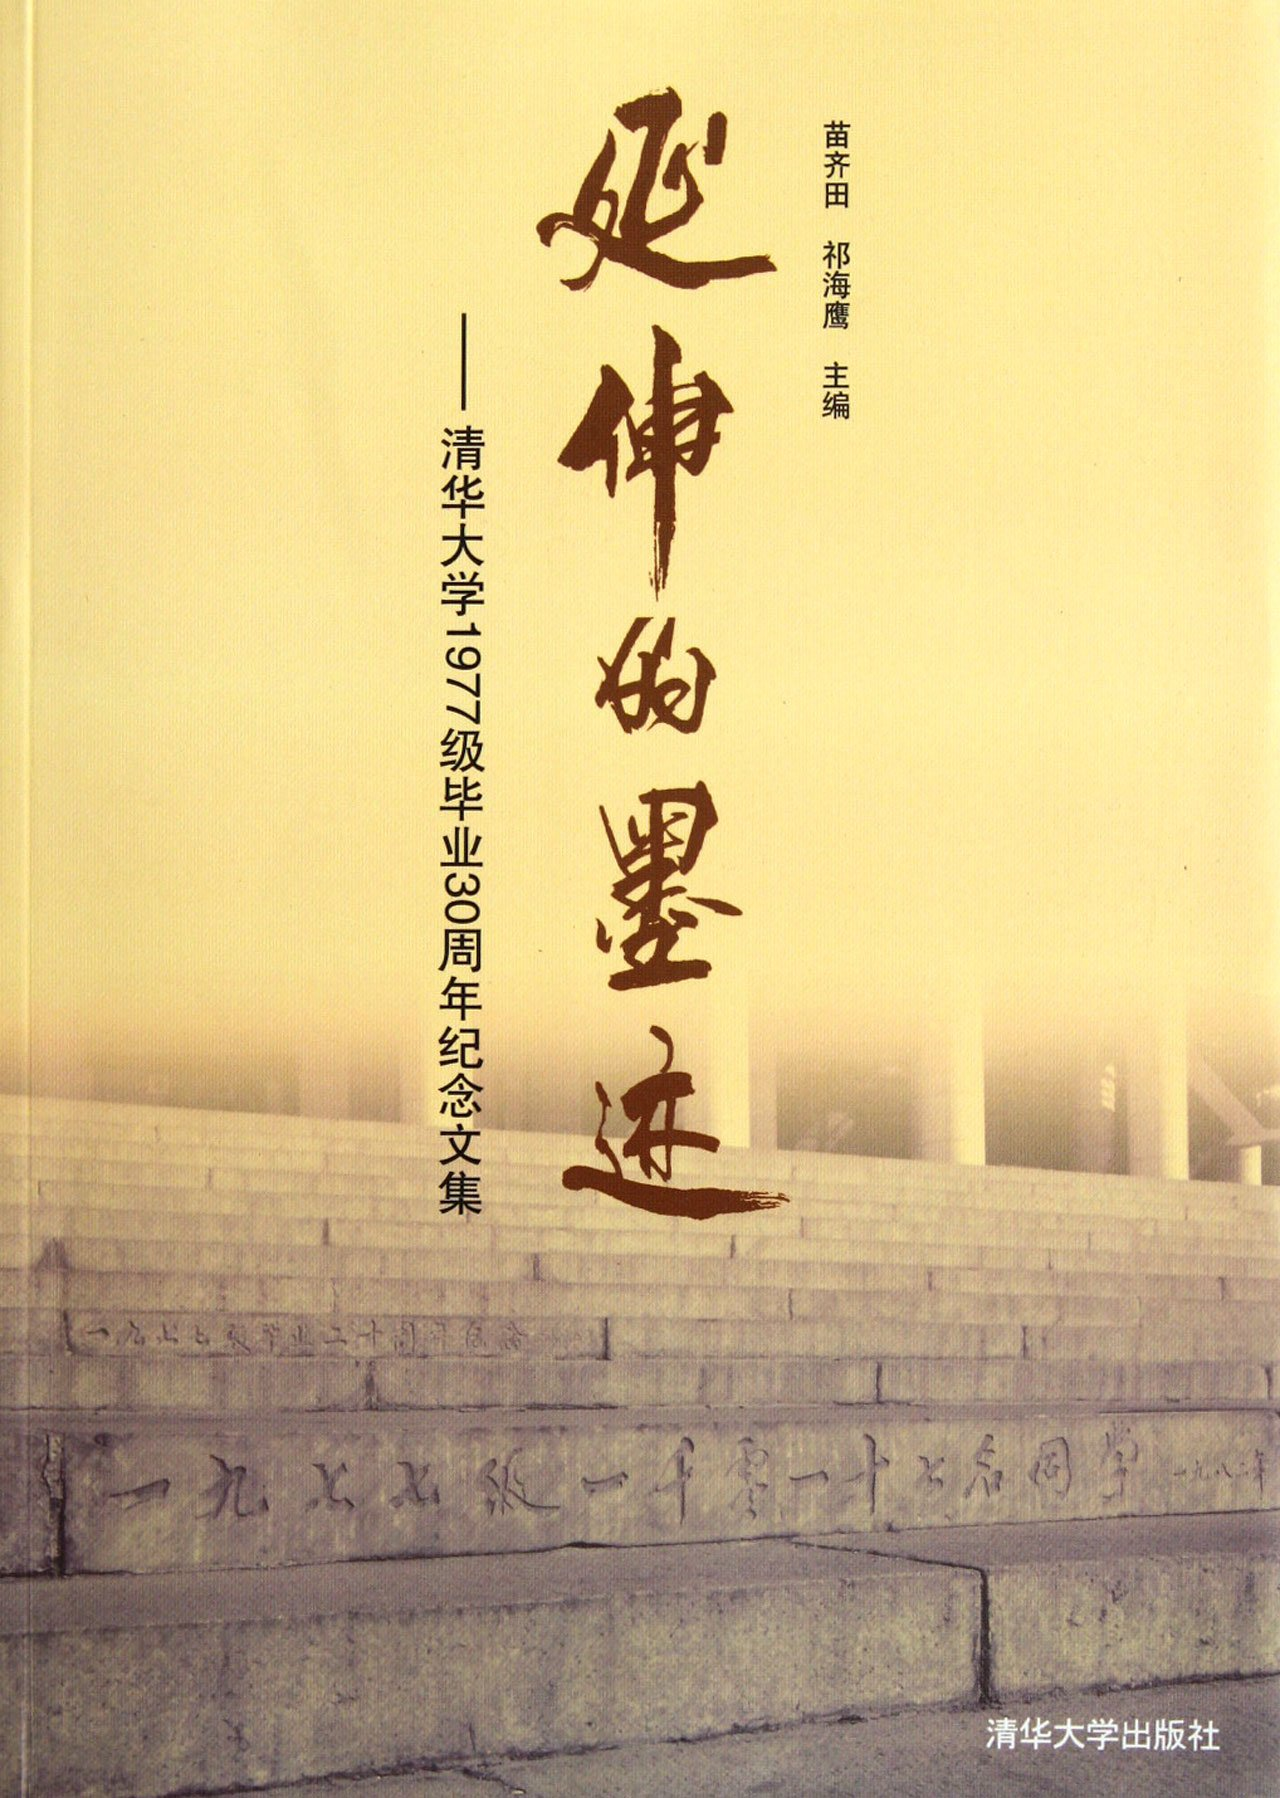 Read Online The Ink From the Extension of Tsinghua University Graduate Level 1977 30 Anniversary Collection (Chinese Edition) ebook